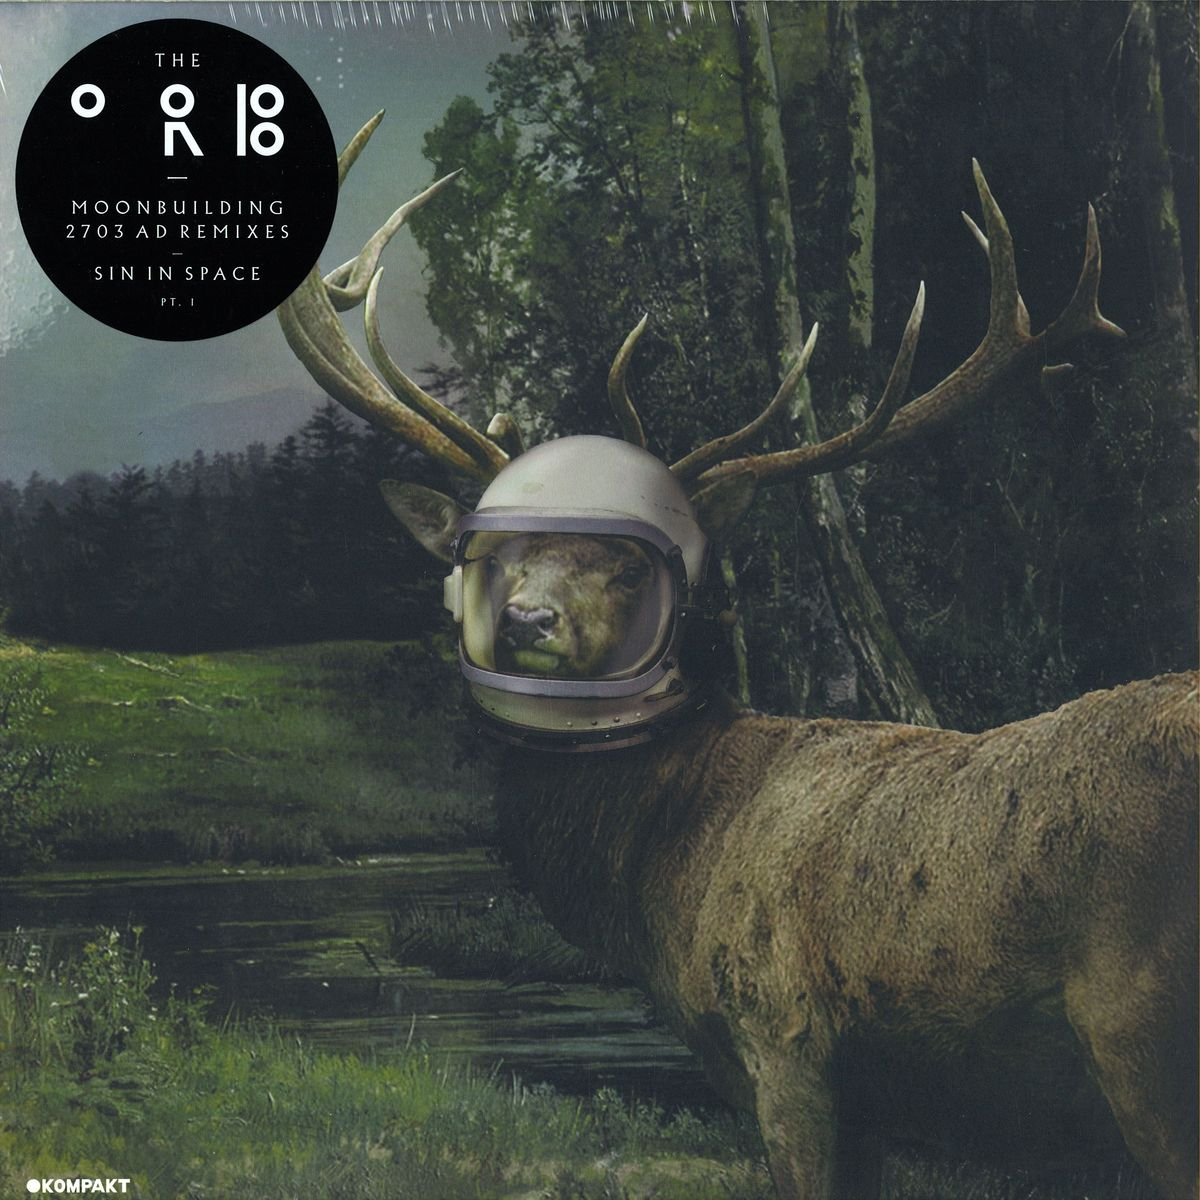 The Orb – Moonbuilding 2703 AD Remixes / Sin In Space, Pt. 1 [KOMPAKT336]